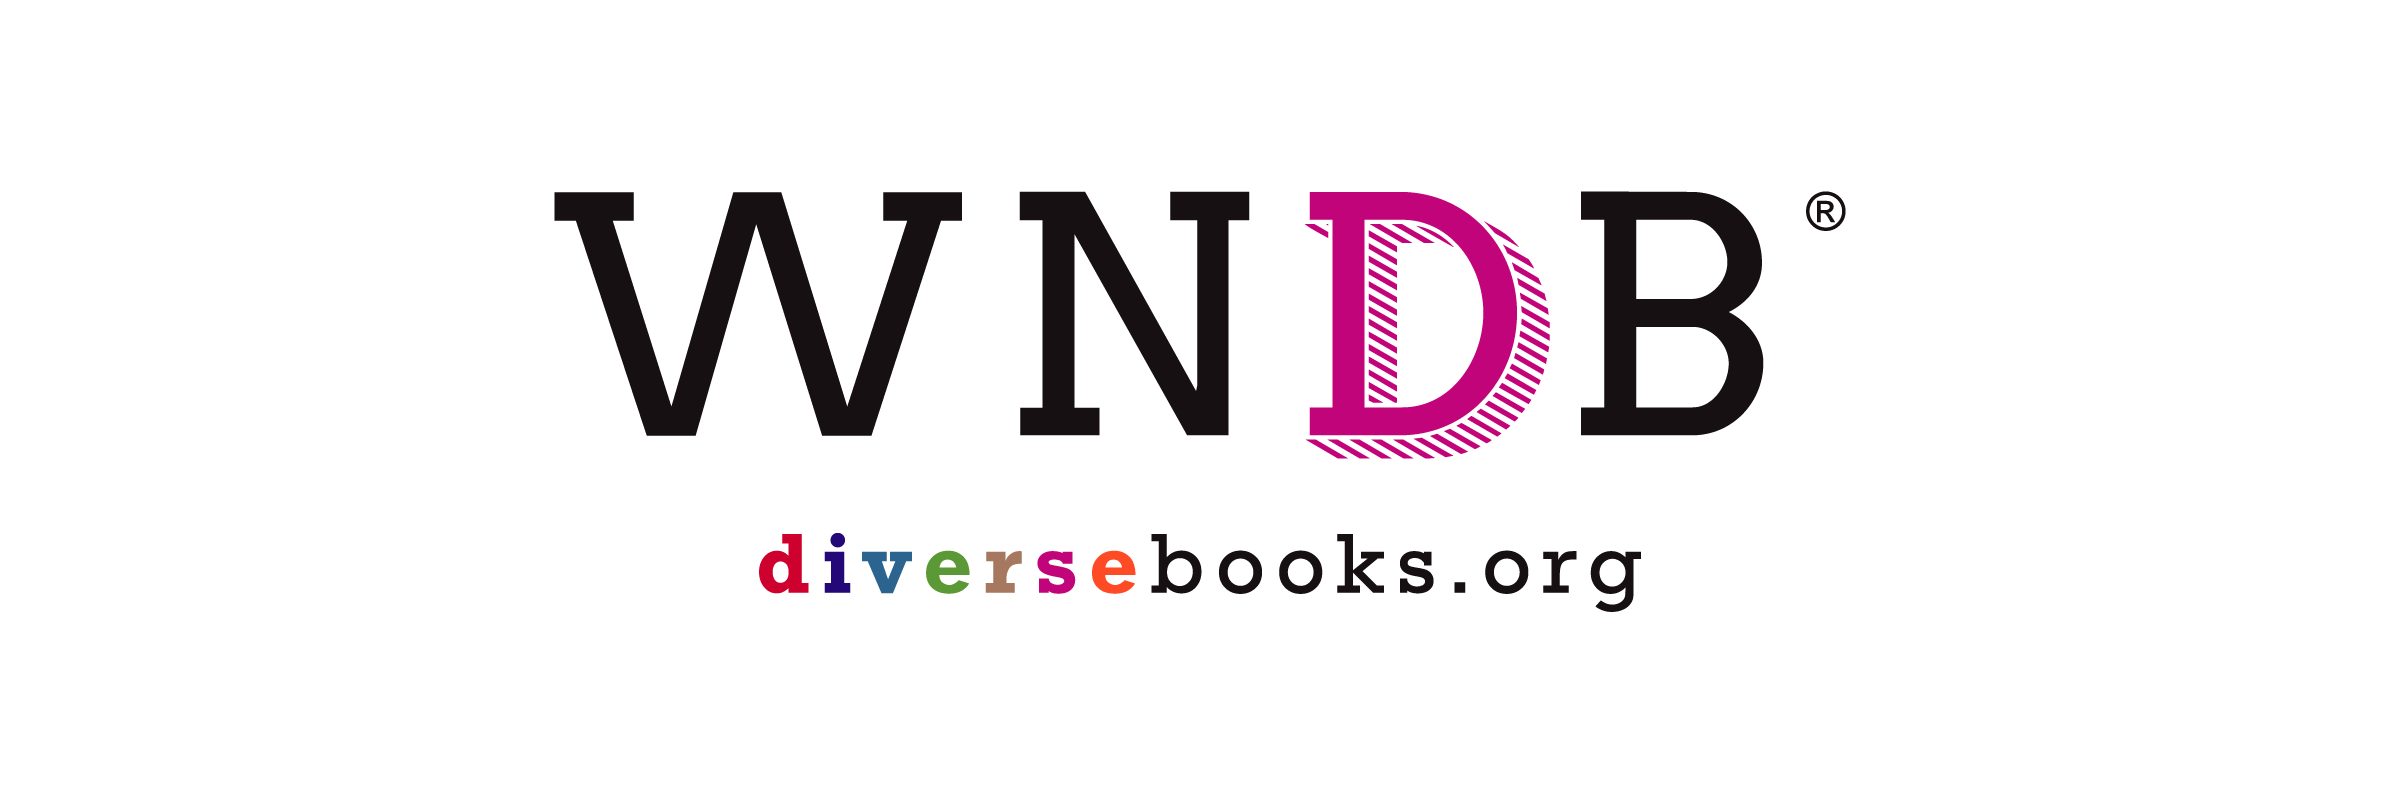 #WNDBTurns5 this month! From 2014 to 2018, books featuring Native/characters of color increased to 31% of all child… https://t.co/1tE686EsBg